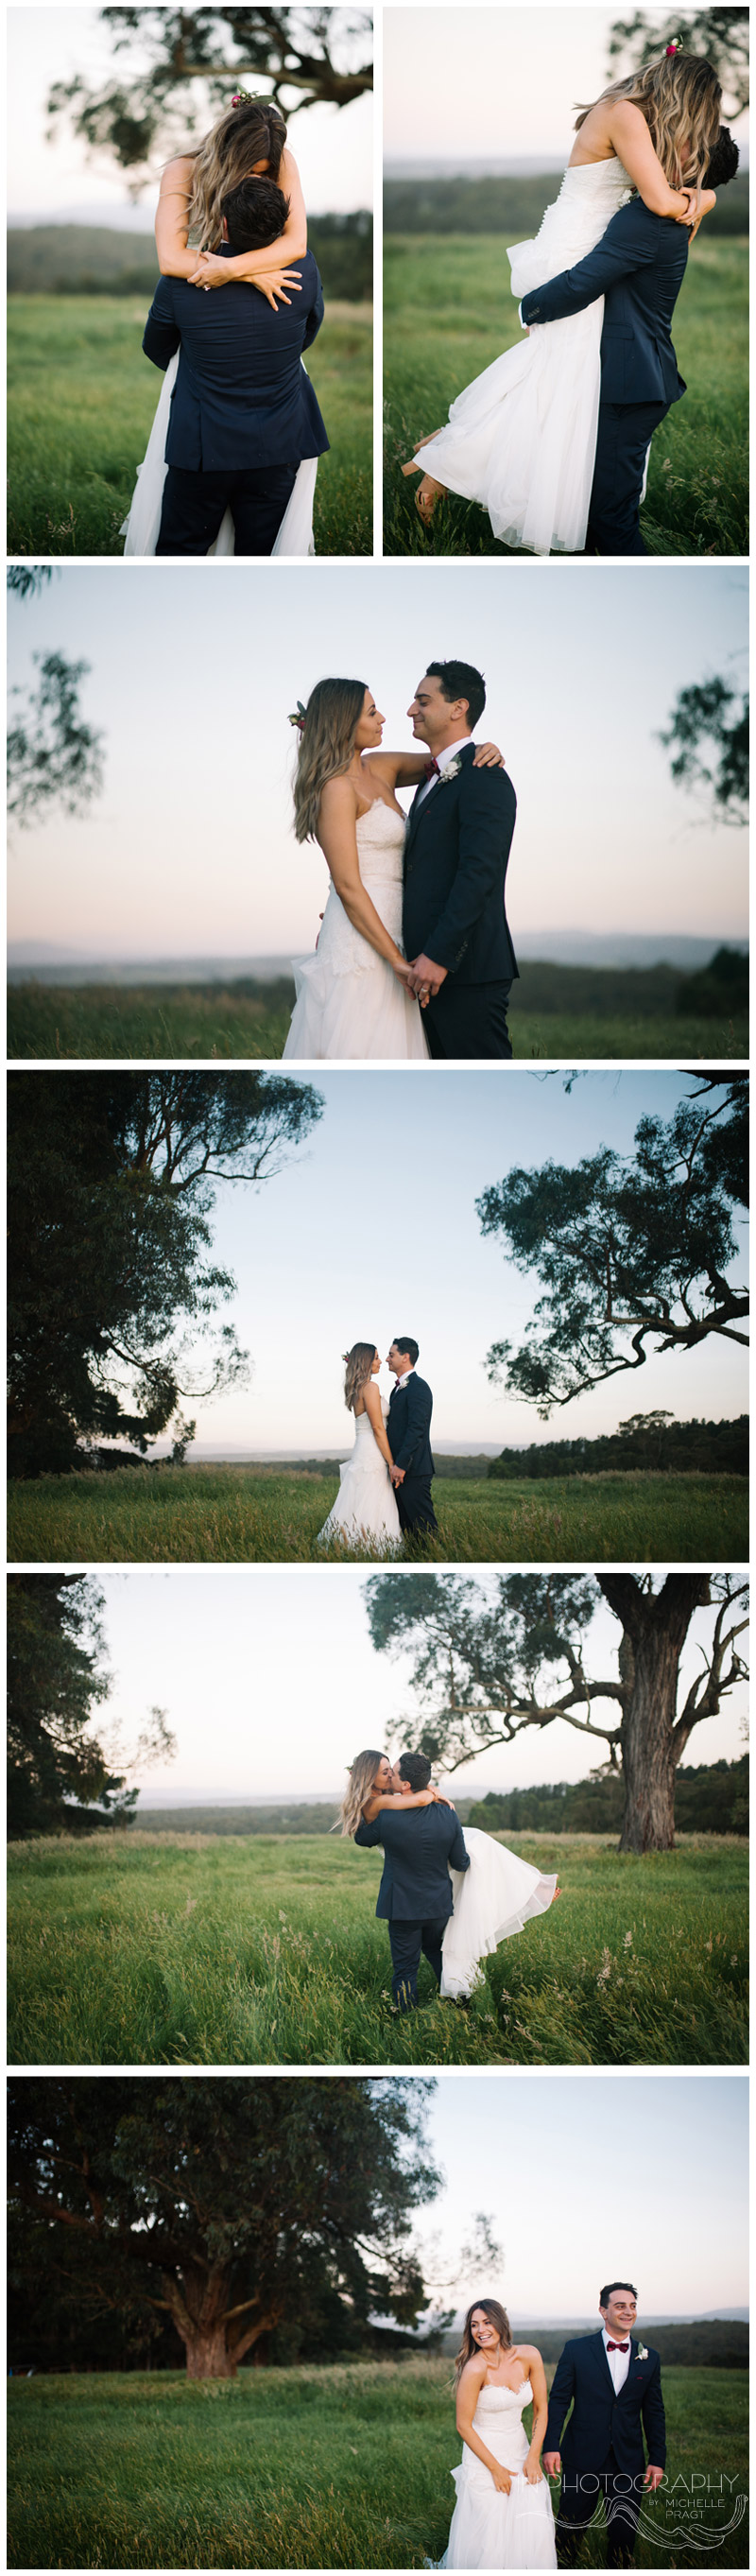 Gorgeous romantic twilight shots of bride and groom by Mornington Peninsula photographer Michelle Pragt